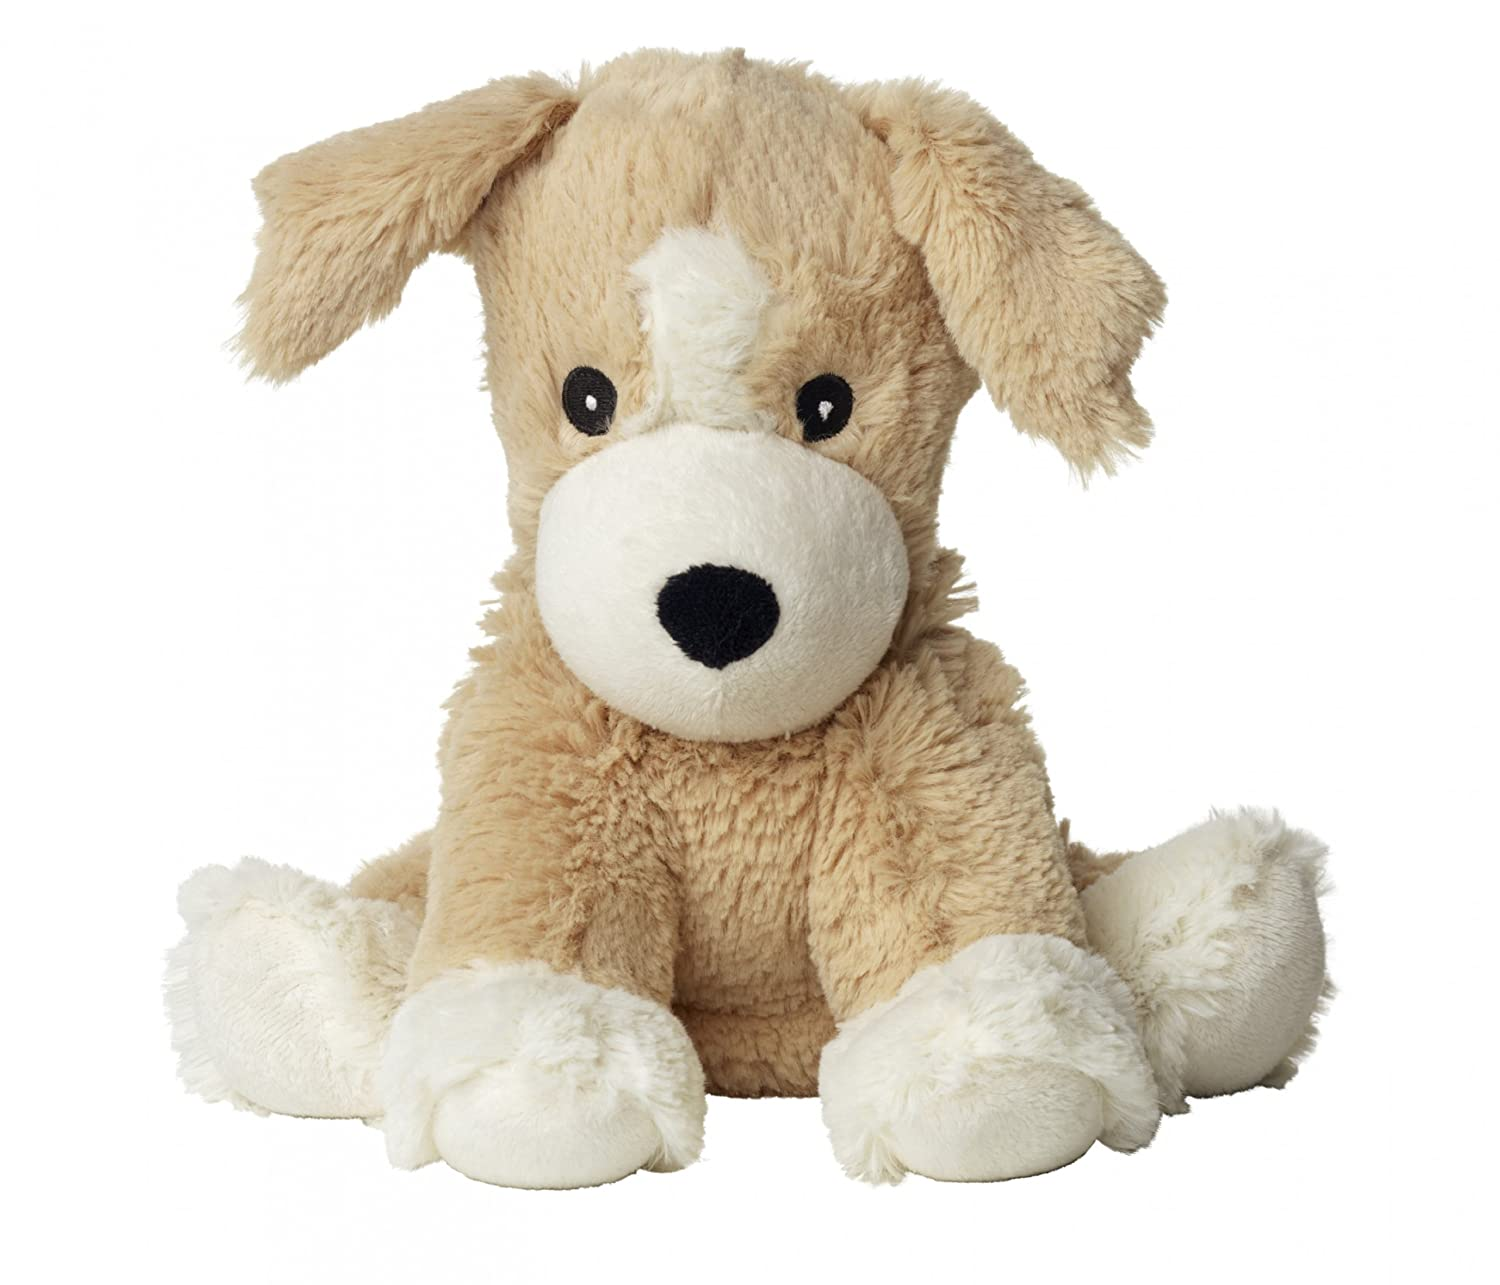 Warmies Beddy Bears Our Puppy Dog with Lavender Scent Greenlife Value GmbH 2228273